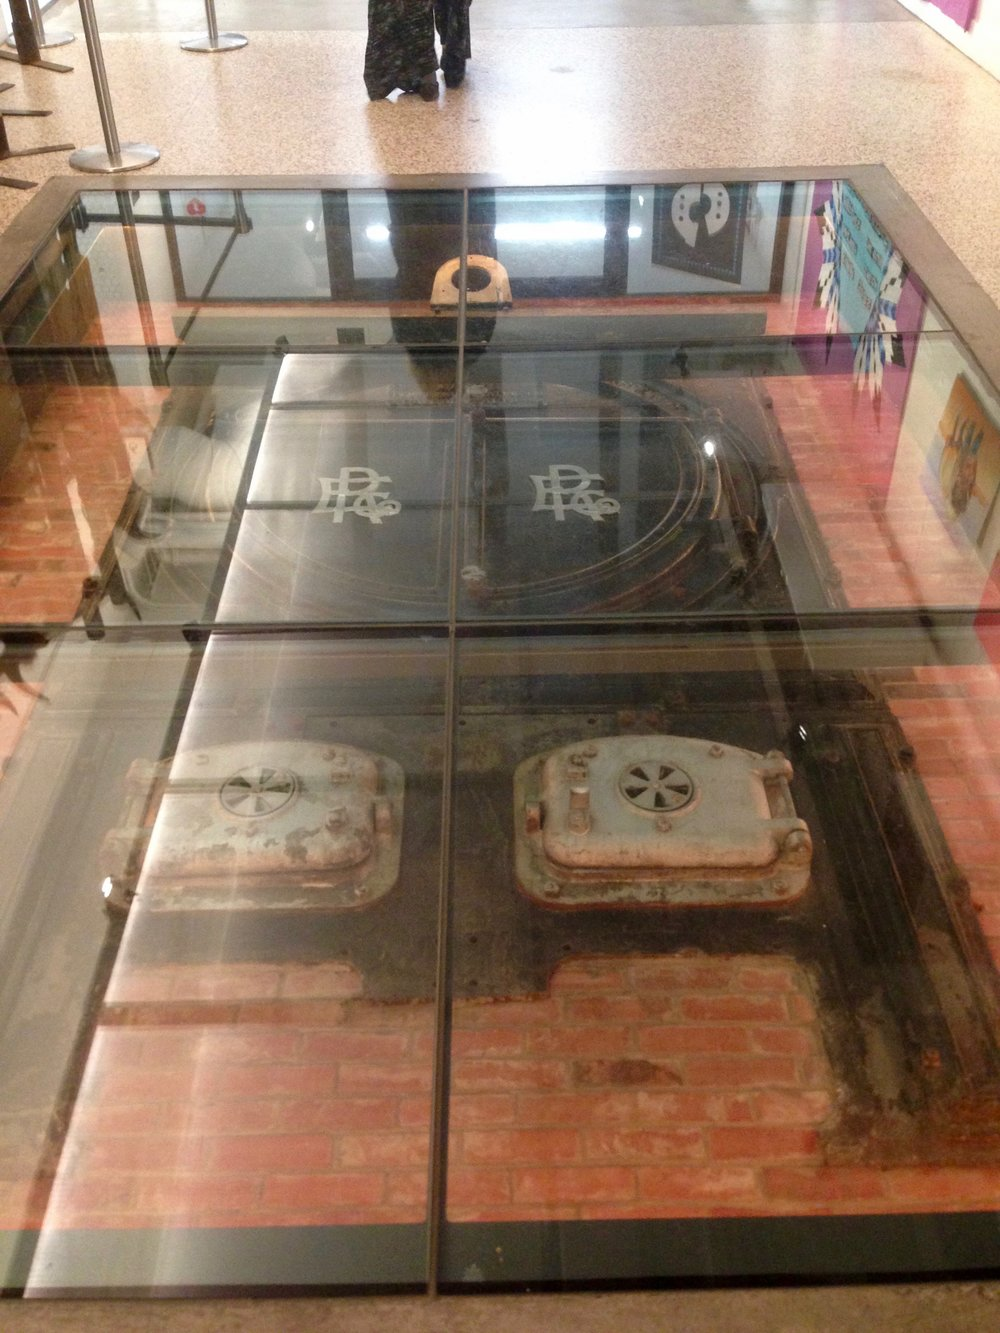 Old Boiler fronts as artifacts in the floor